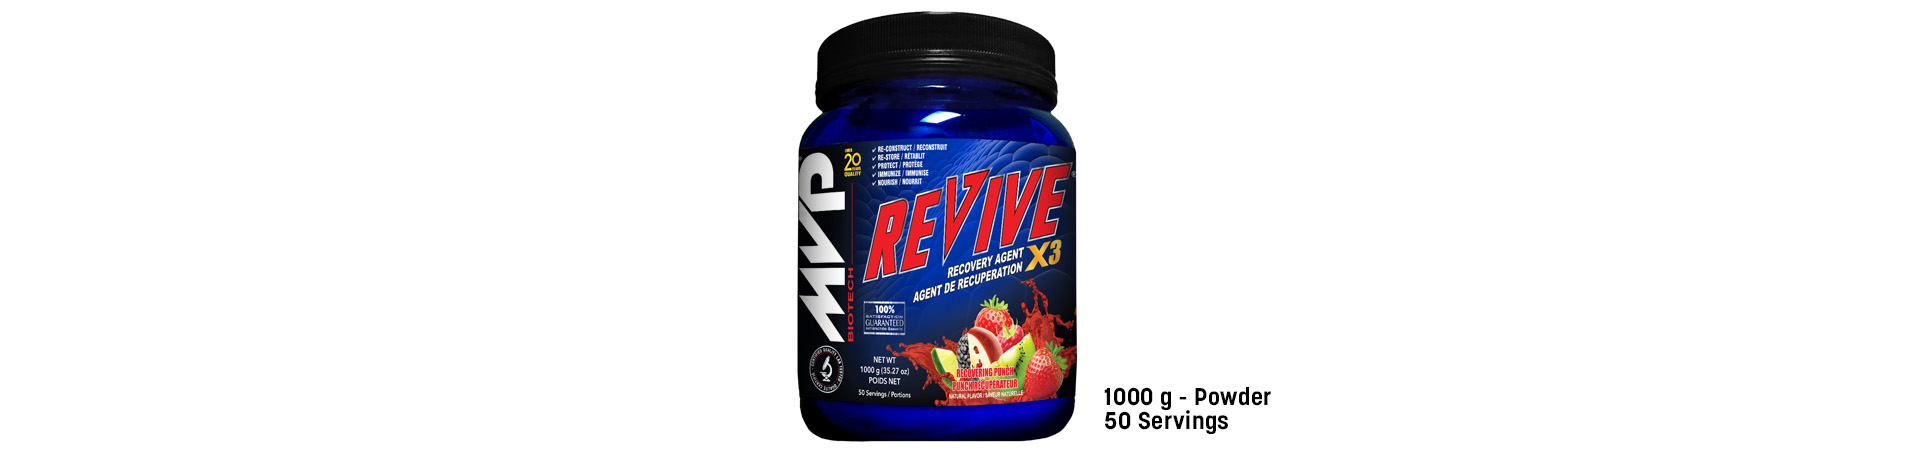 ReviveX3_AvailableSize-new